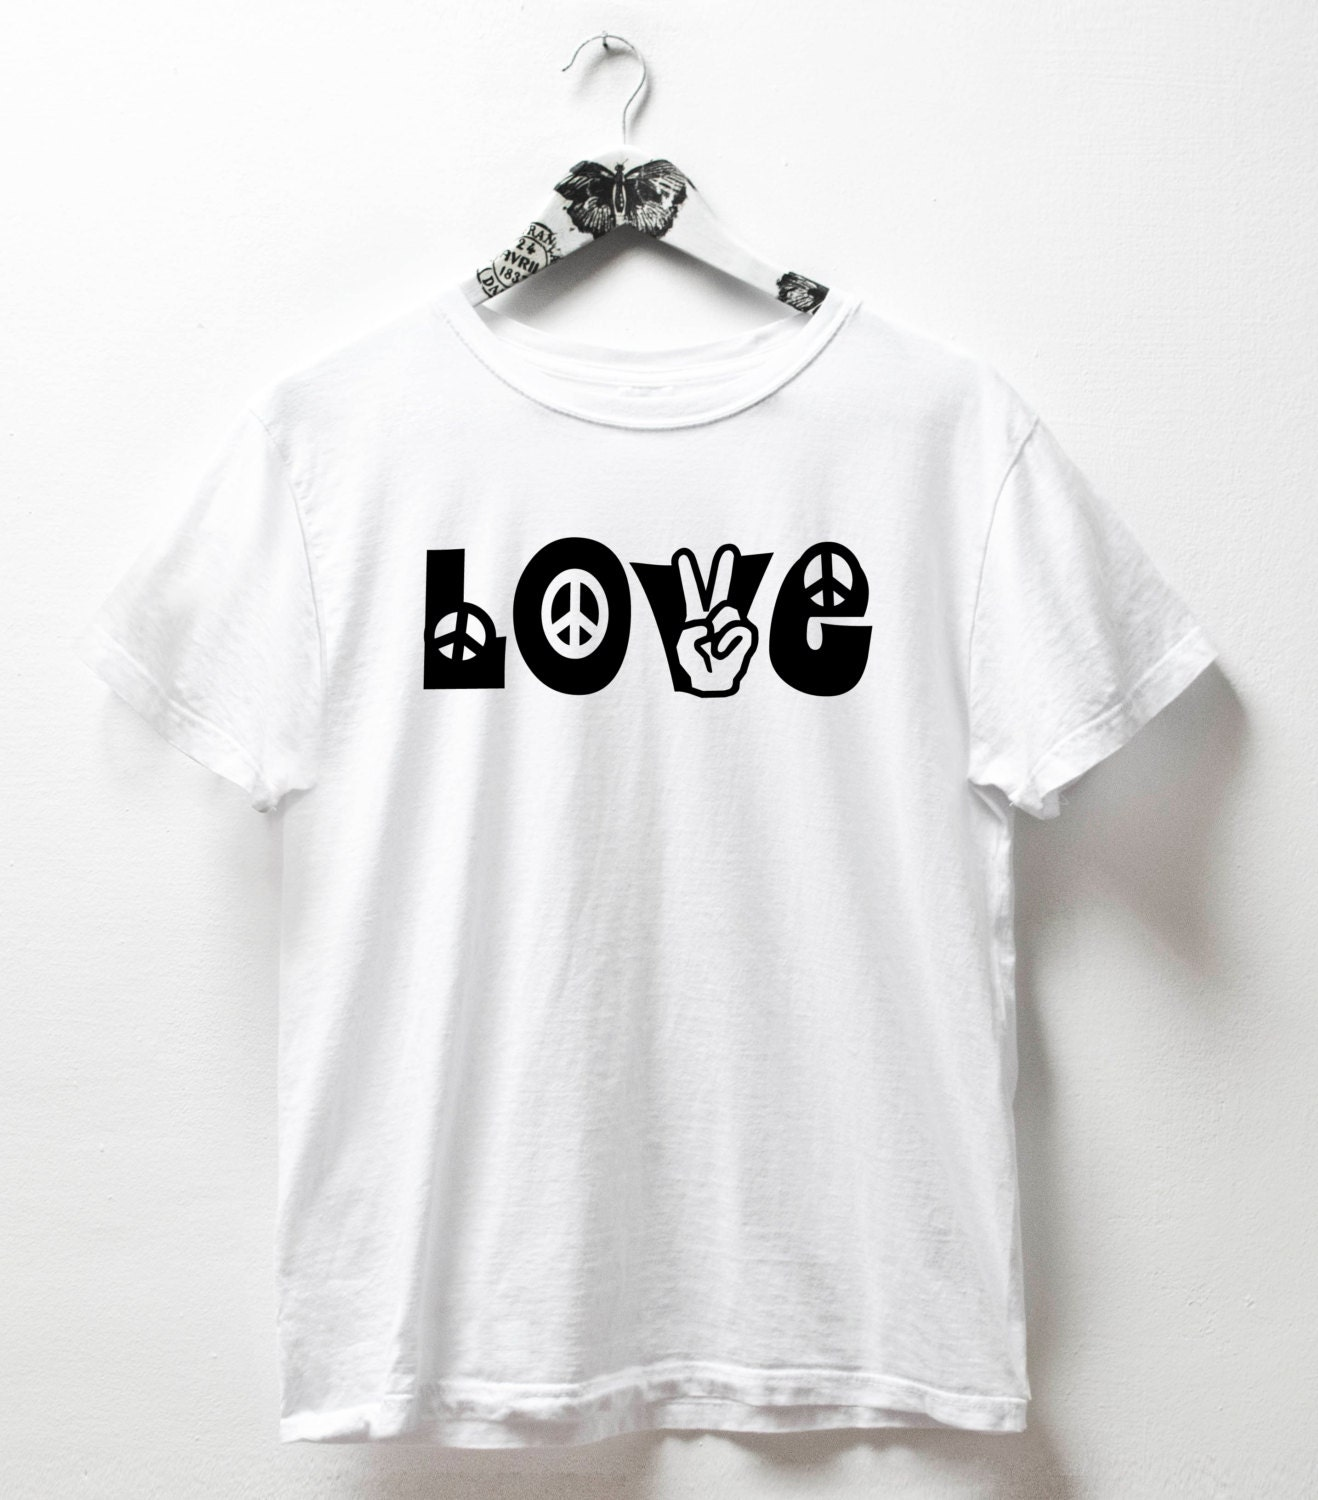 Love Quotes Clothing Love Shirt Love Sign Love Quotes Peace Funny Tee Tops Humor T